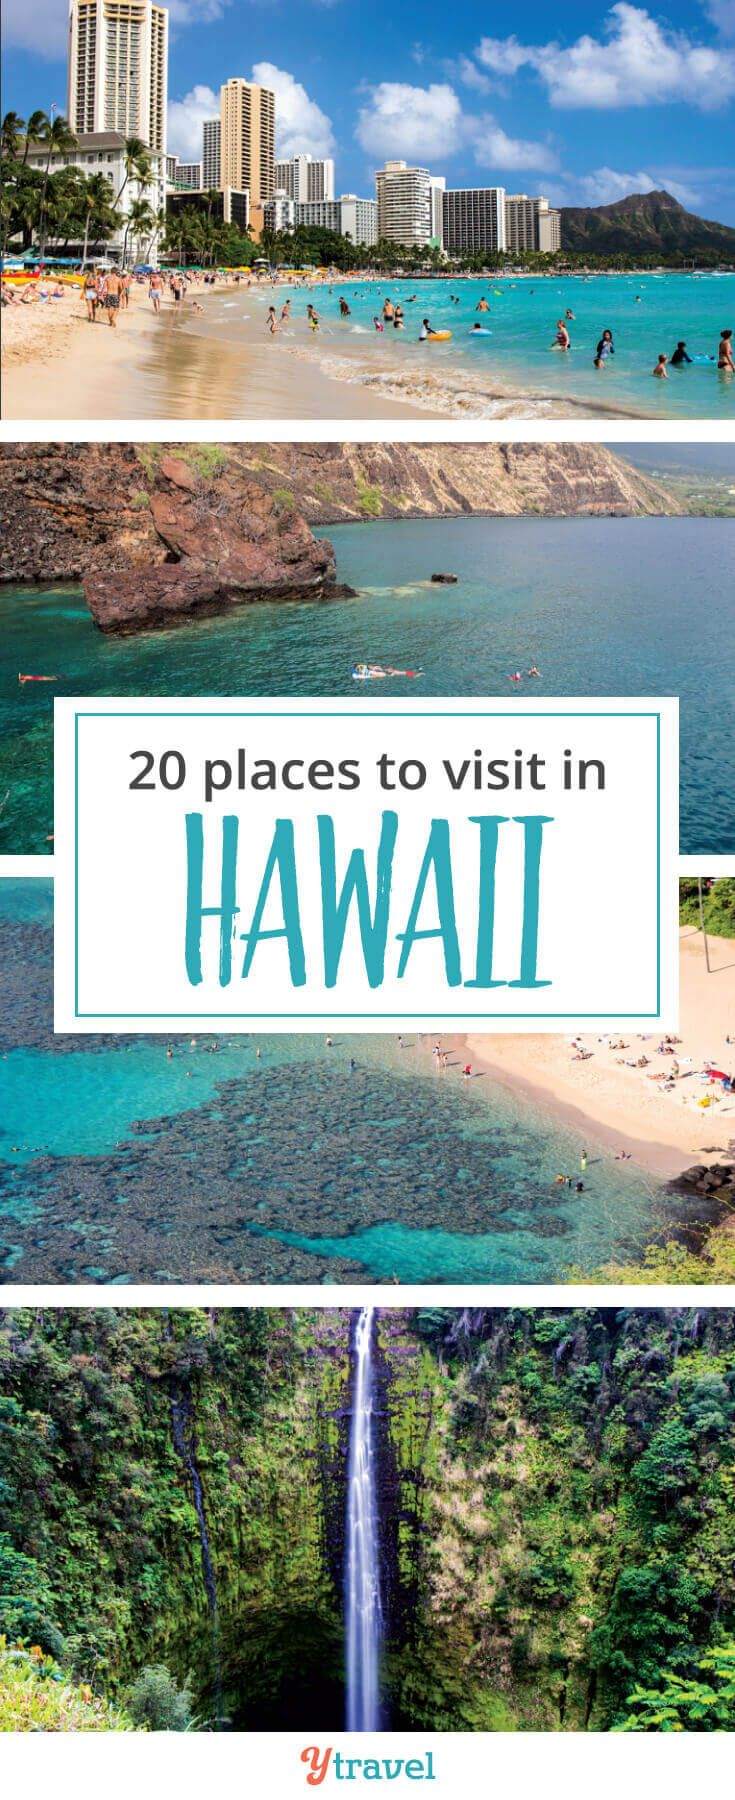 20 Places To Visit In Hawaii On A Family Vacation Travel Tips Pinterest Usa And